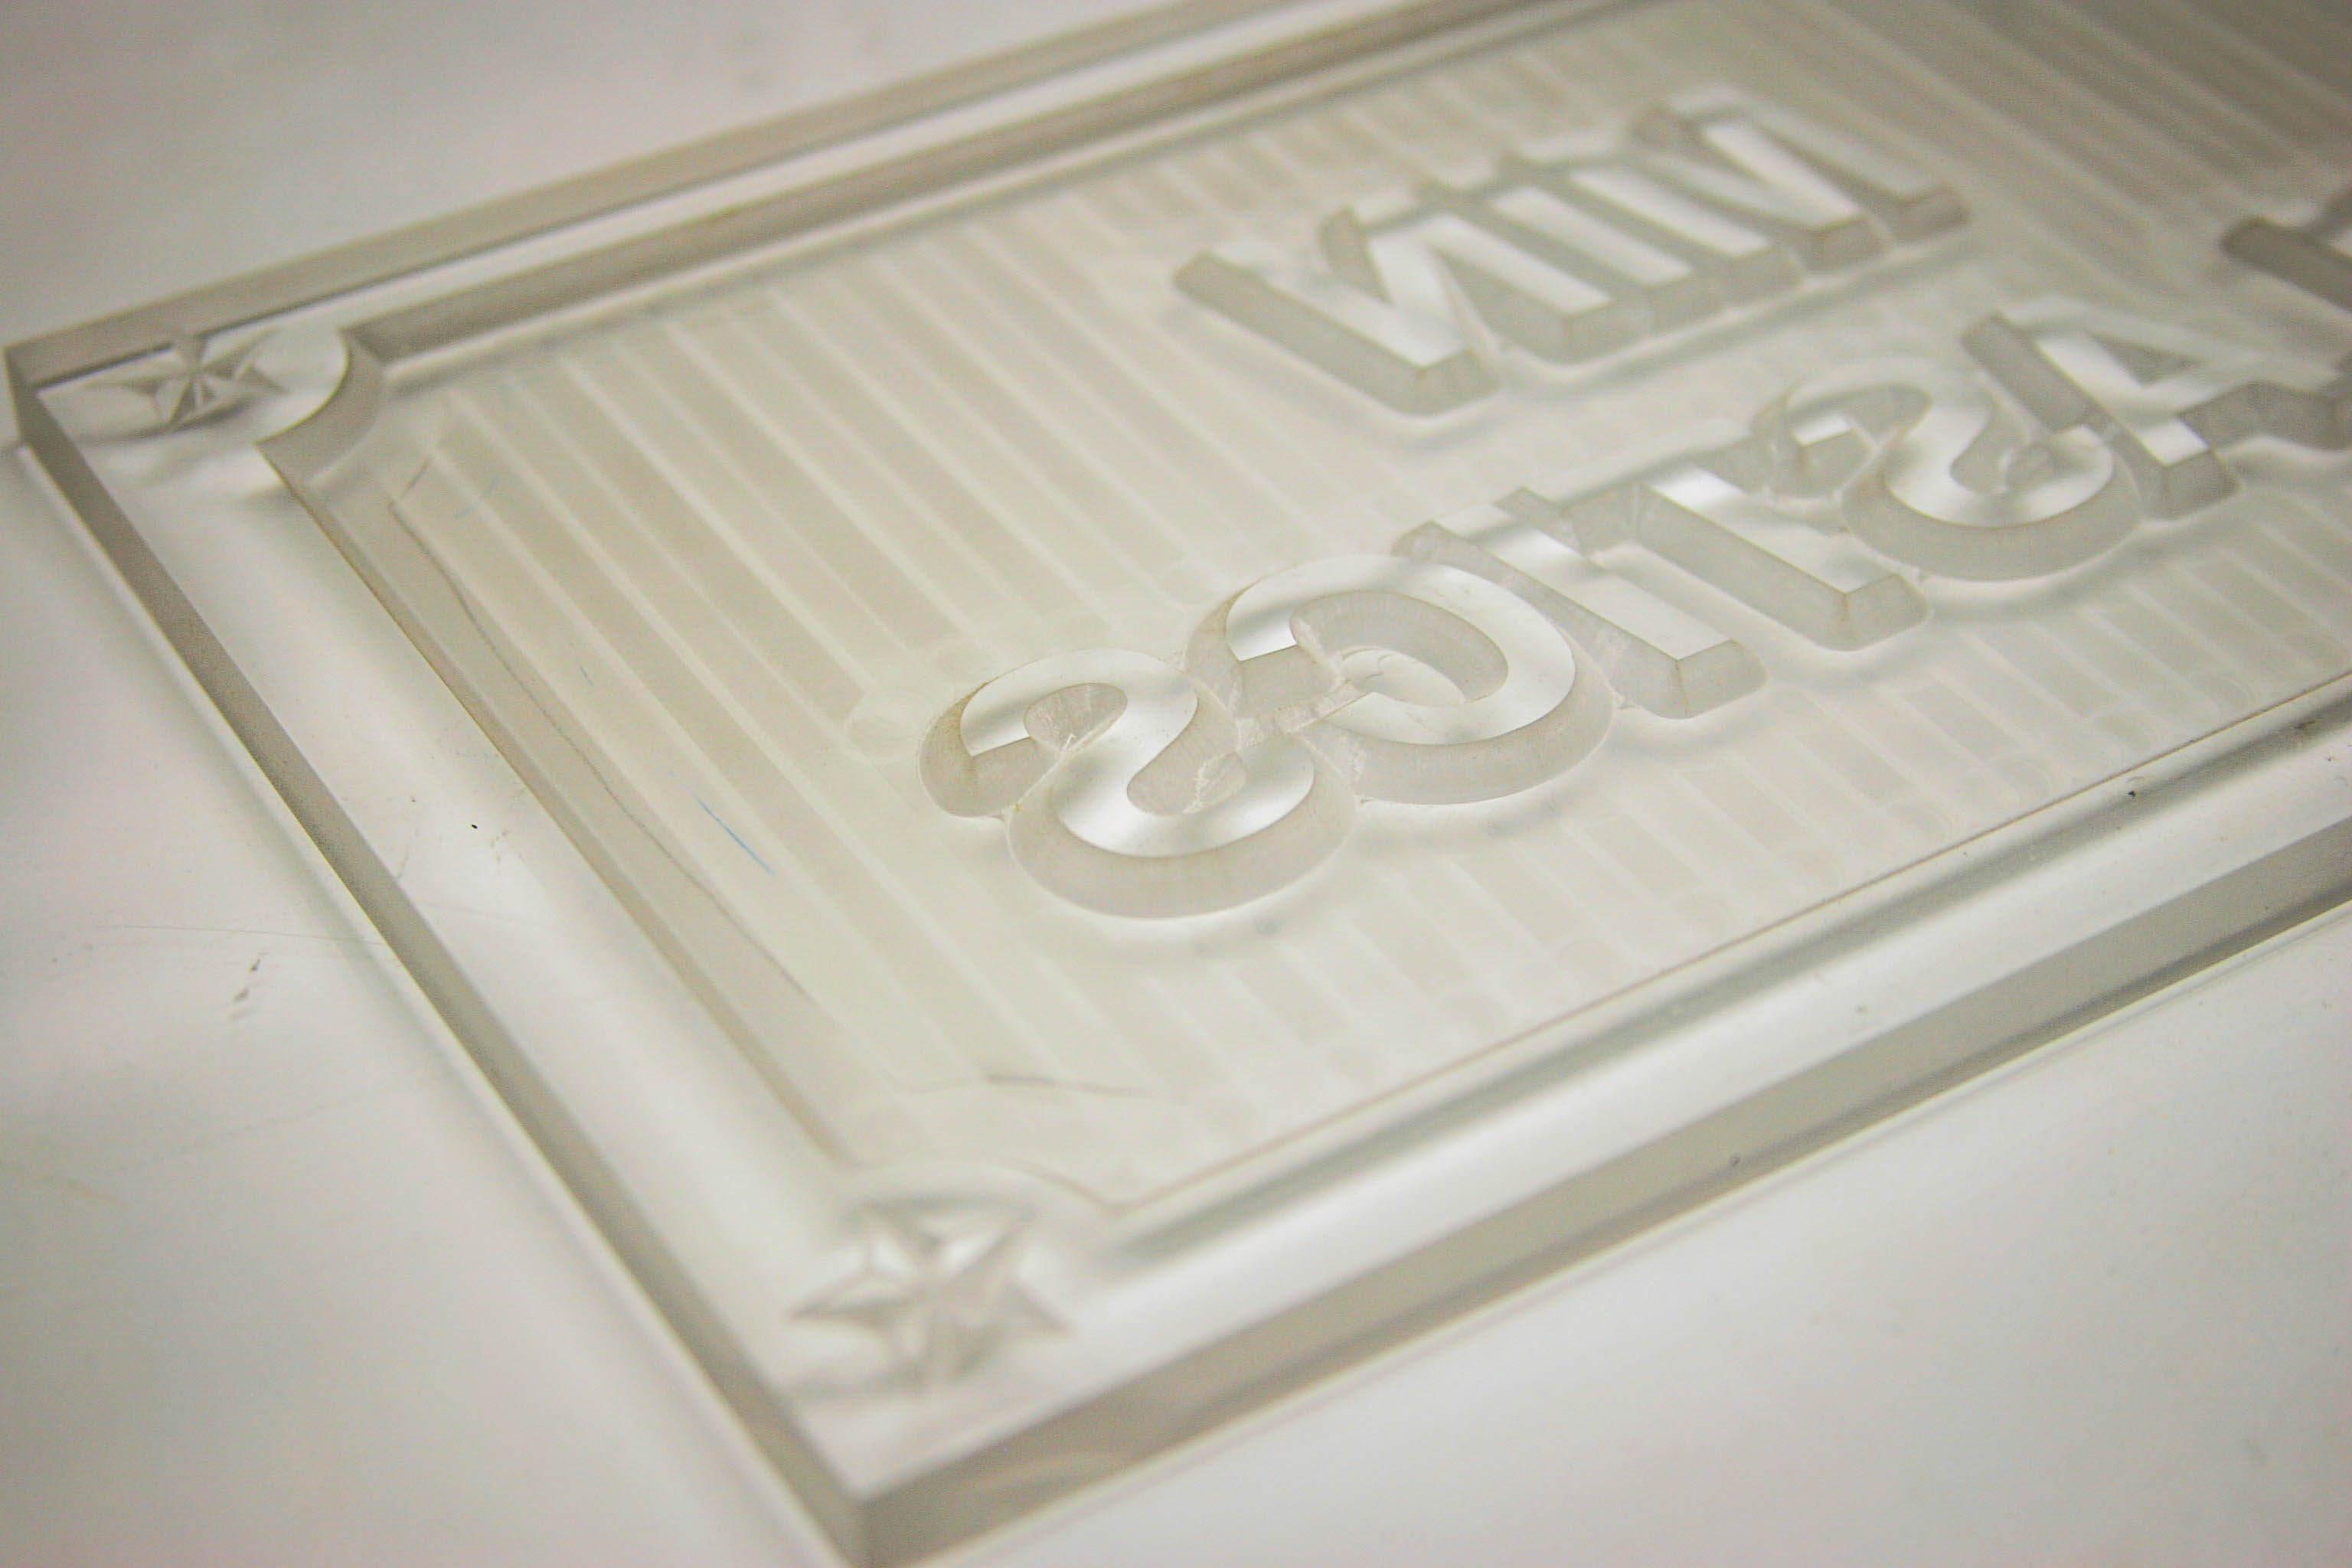 cnc engraving raised letters